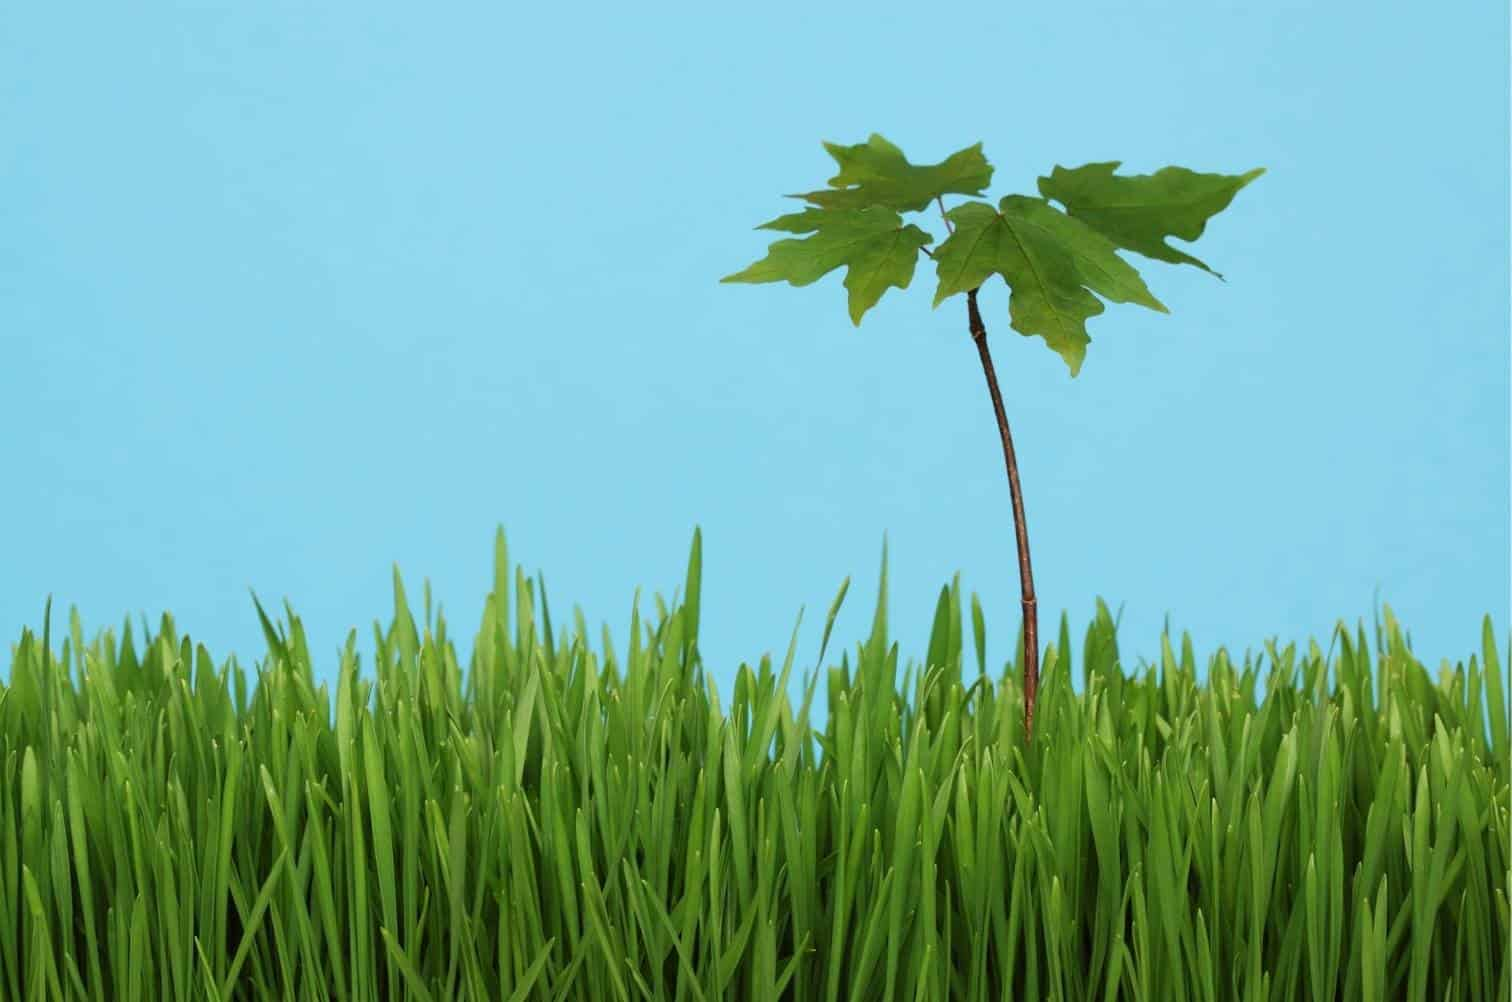 How To Get Rid of Maple Tree Seedlings in Lawn